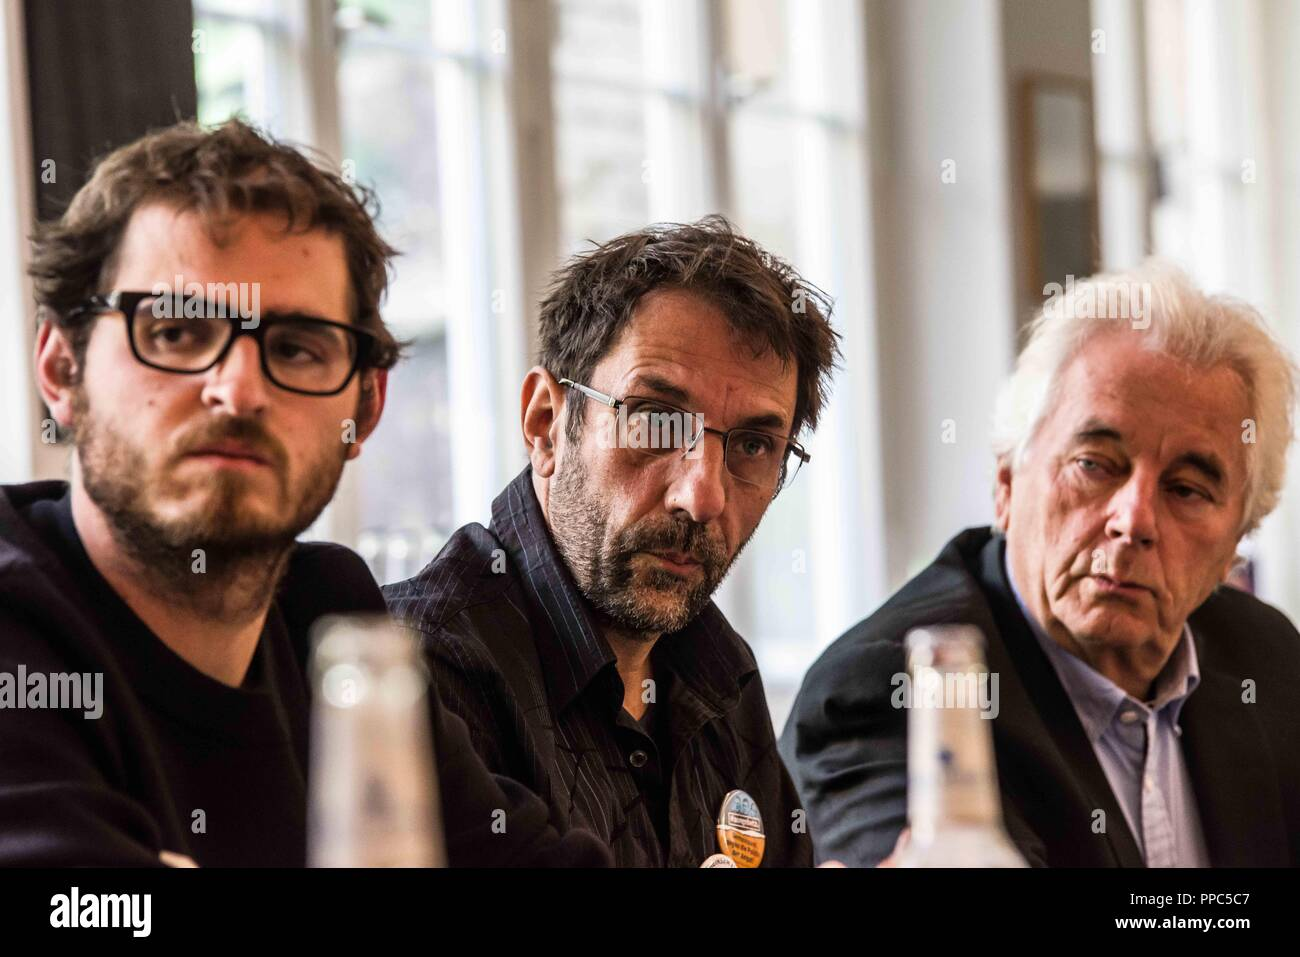 Munich, Bavaria, Germany. 25th Sep, 2018. Fred Heussner of the NoPAGBY organization, Thomas Lechner, who organized the NoPAG demonstration, and civil rights expert Hartmut Waechtler. Citing the increasing politics of fear and attacks on civil and human rights, some 55 civil groups, organizations, and political parties have organized a follow up to the successful Munich NoPAG demonstration against the PAG Police Assignment Laws. The groups state that the increasingly exclusionary and populistic politics of the CSU and the AfD, along with the Polizeiaufgabengesetze (PAG Police Assignment - Stock Image